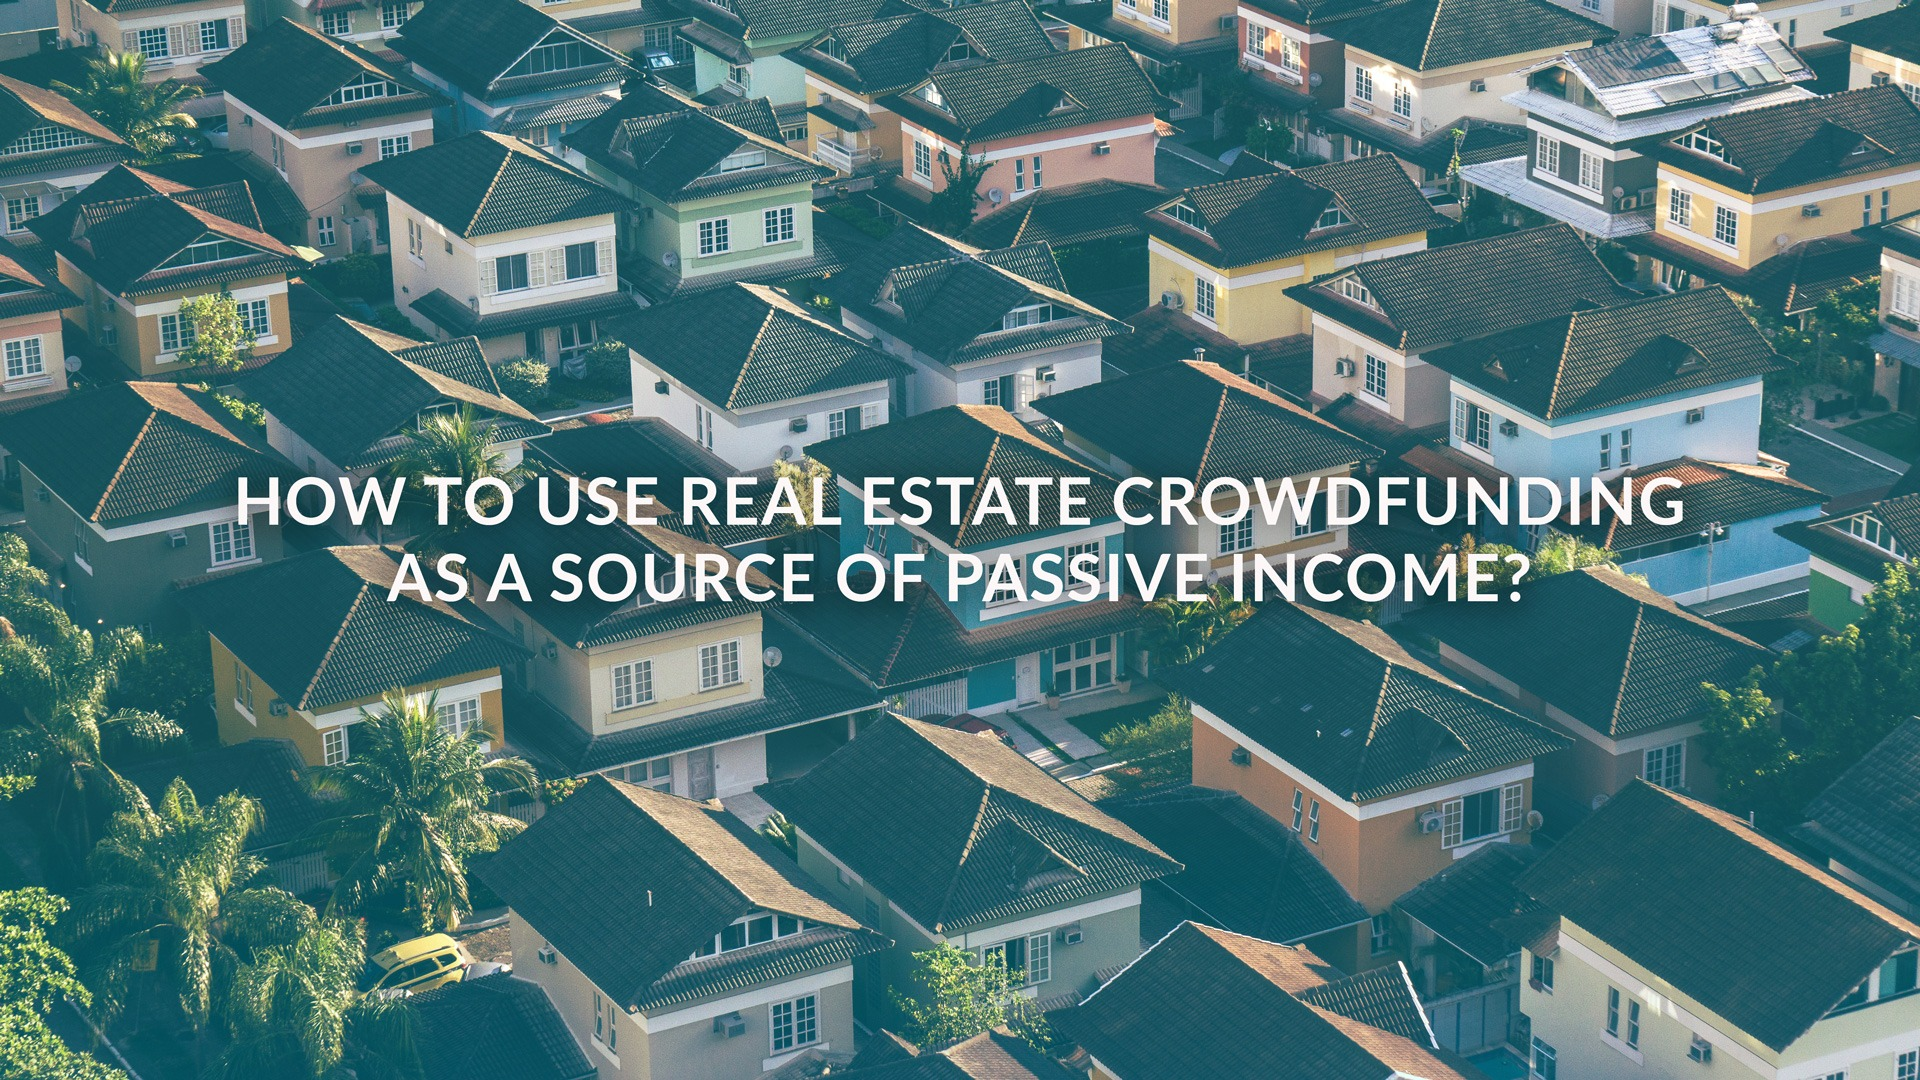 How To Use Real Estate Crowdfunding As A Source Of Passive Income